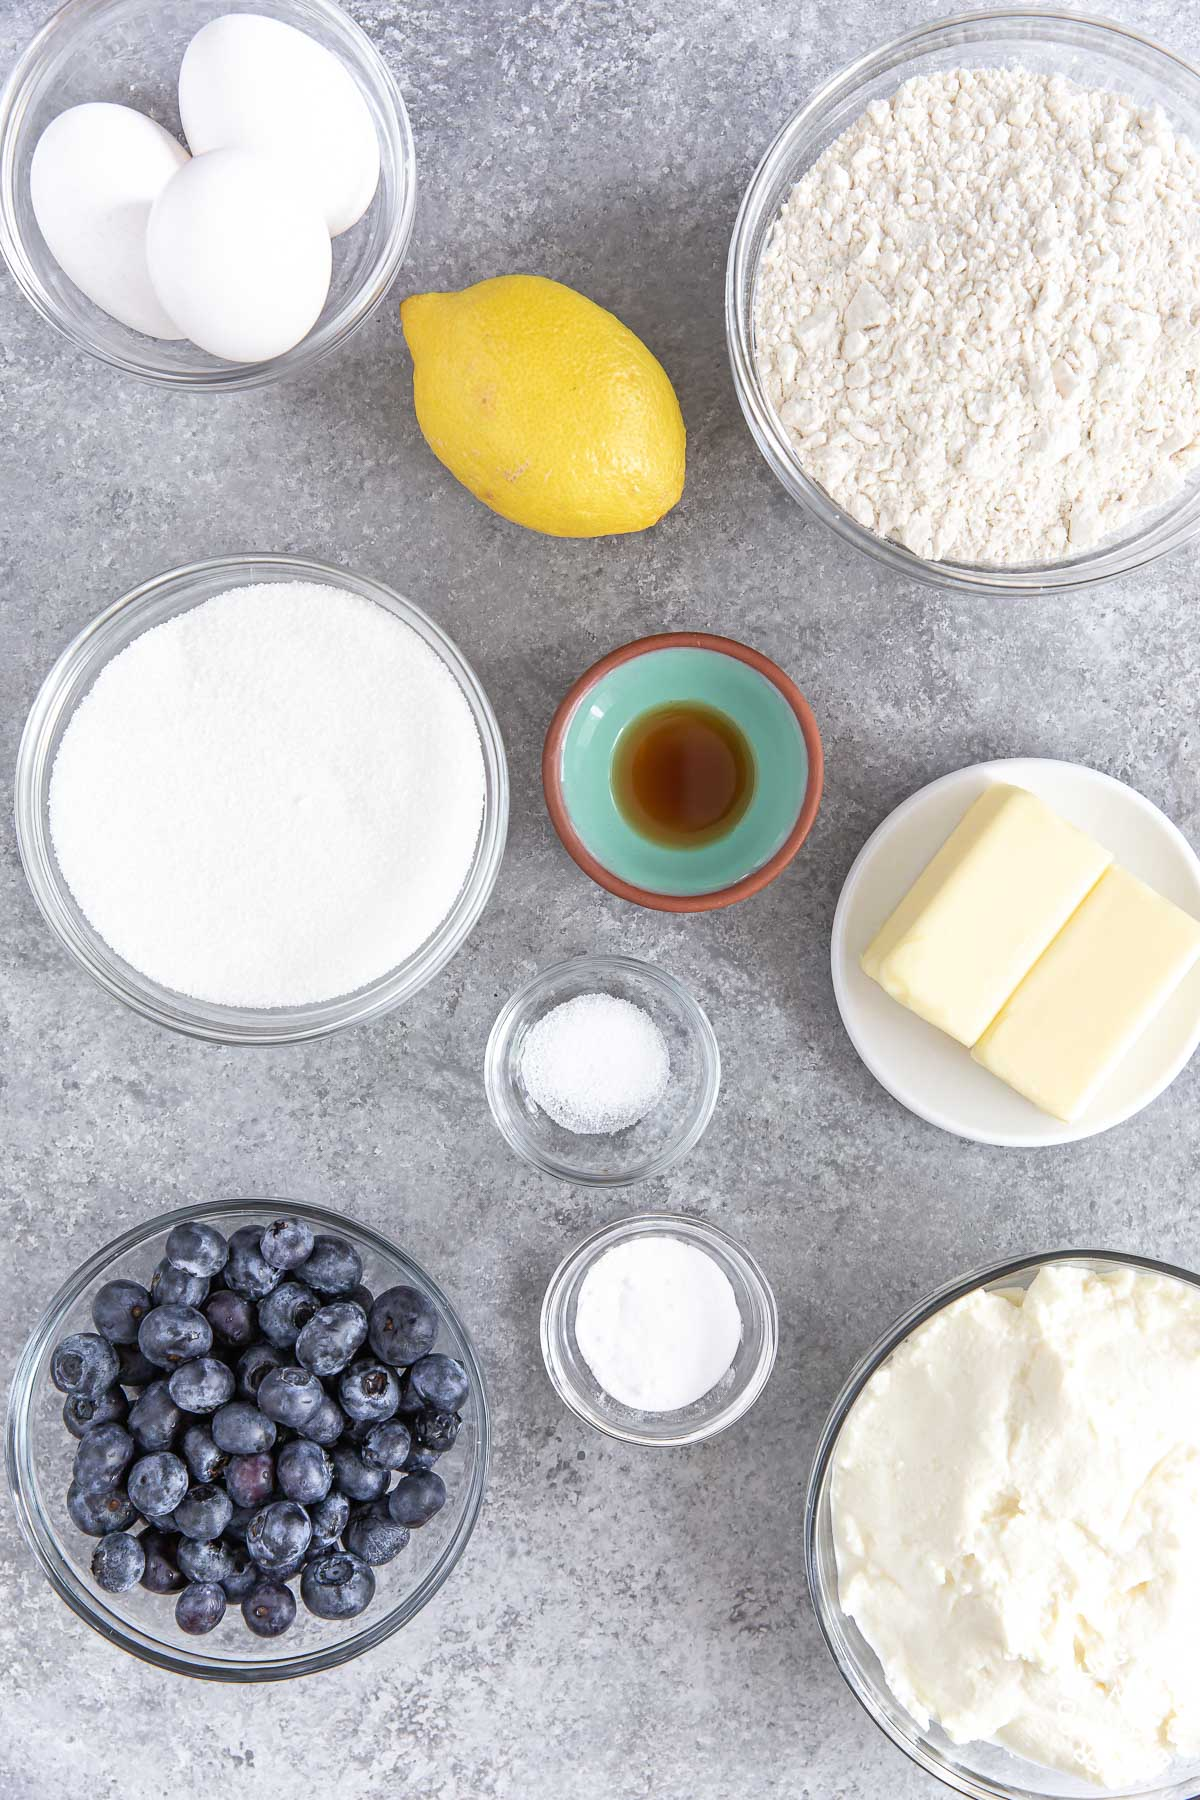 flour, sugar, lemon, vanilla extract, eggs, blueberries ricotta cheese and butter in bowls on a counter